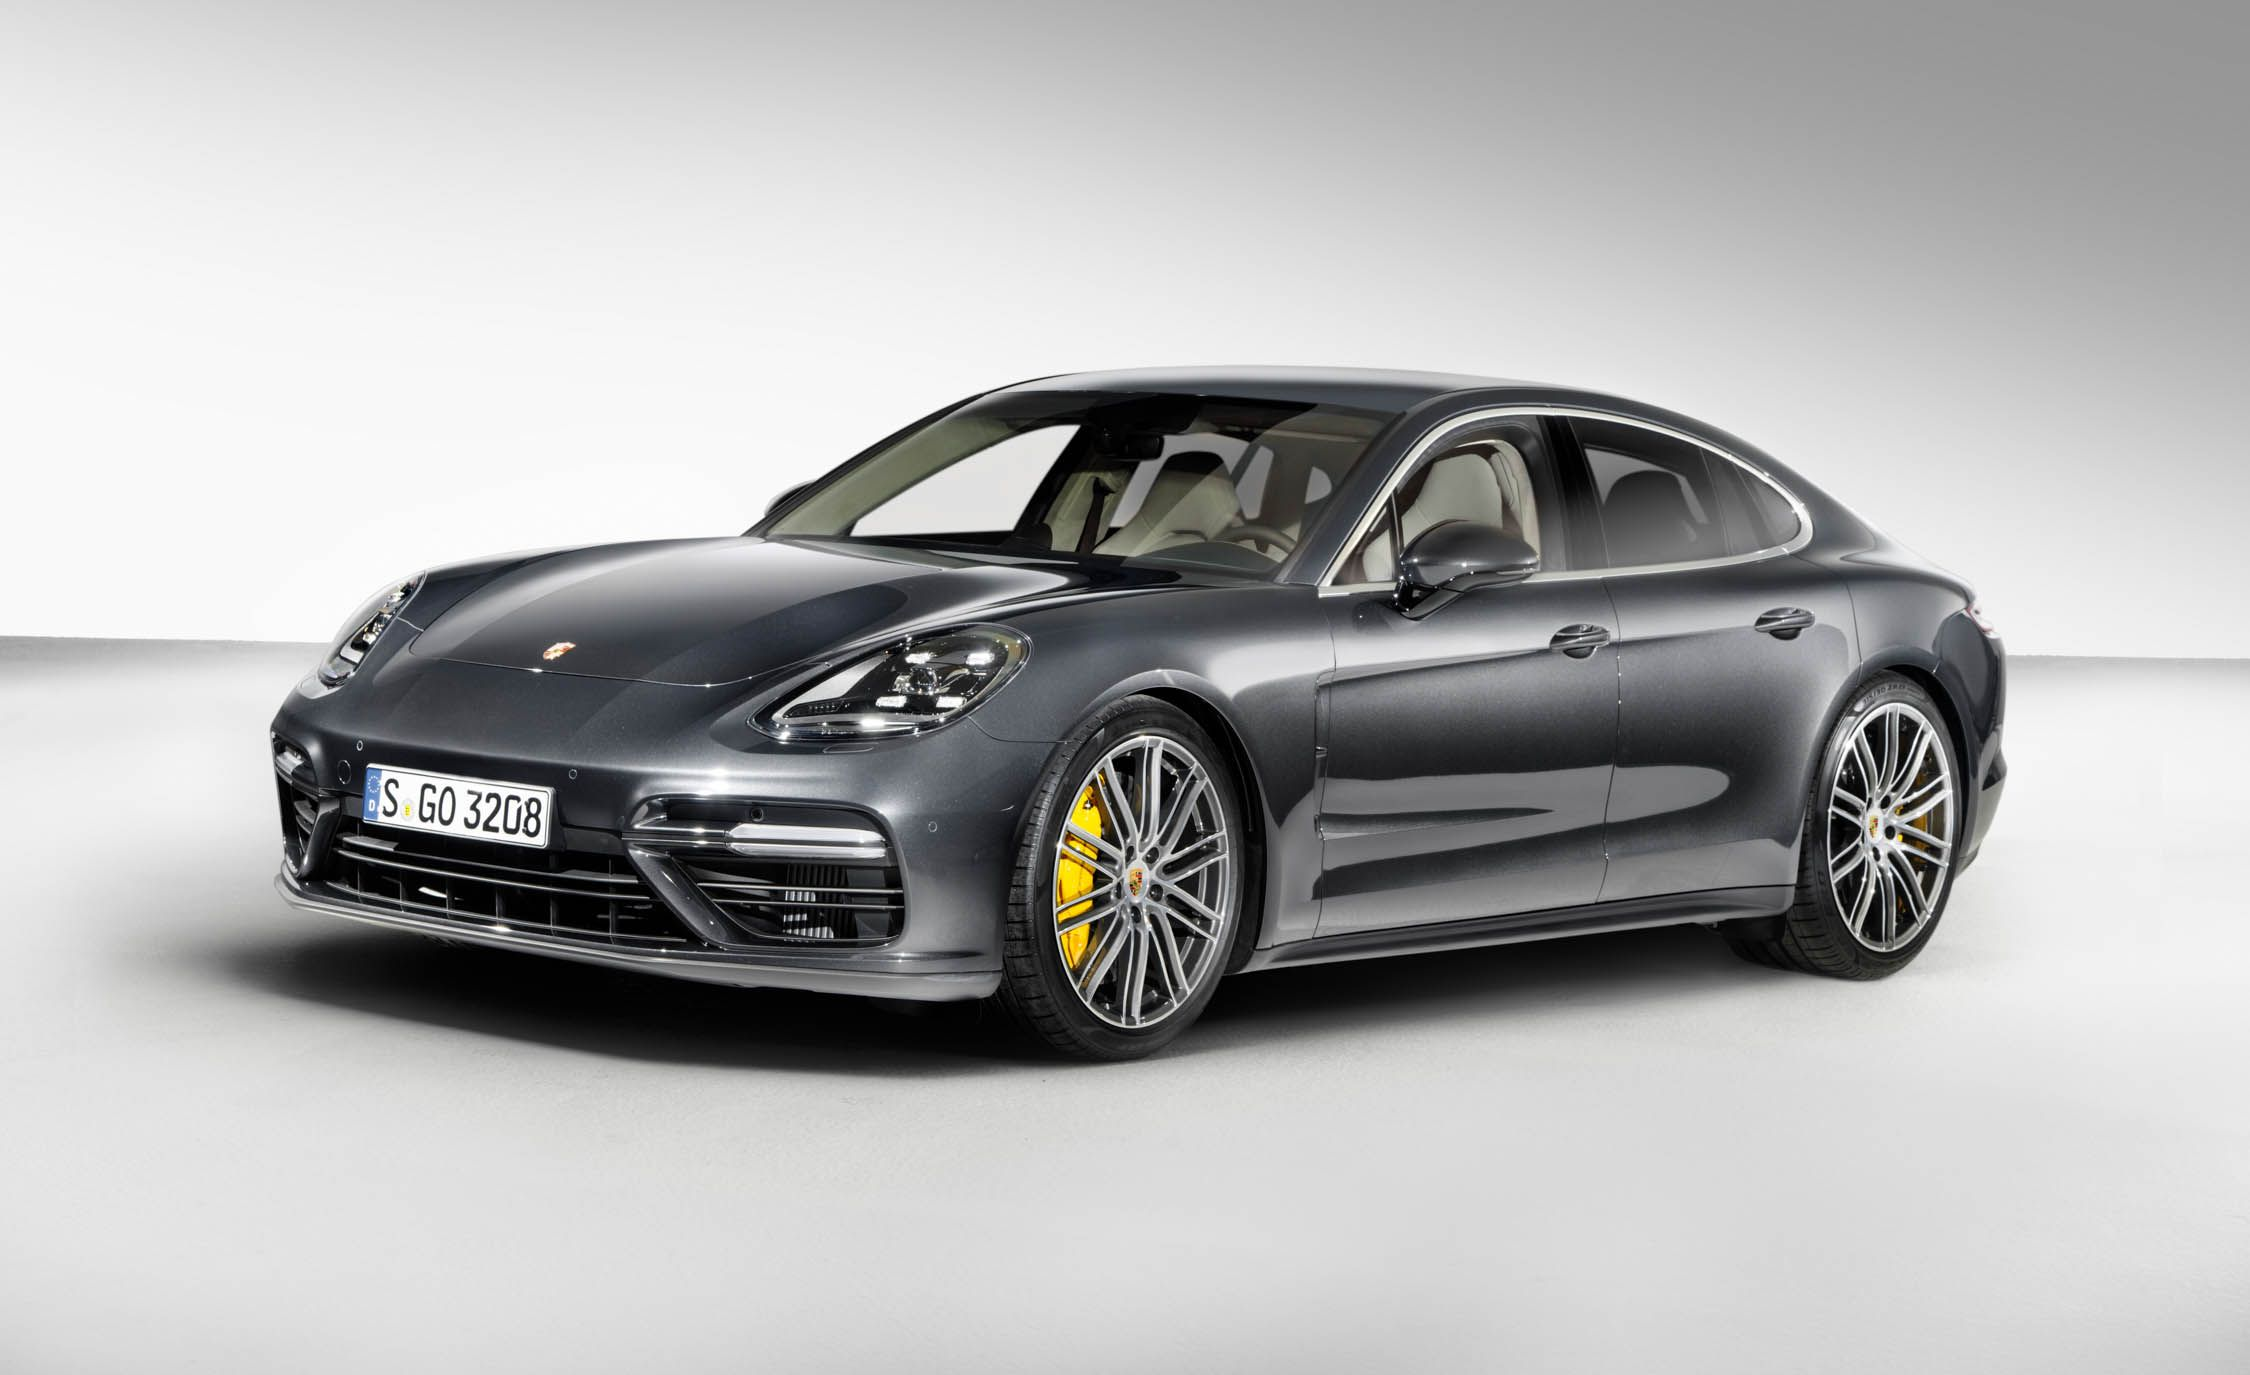 2017 Porsche Panamera Beautifully Advanced